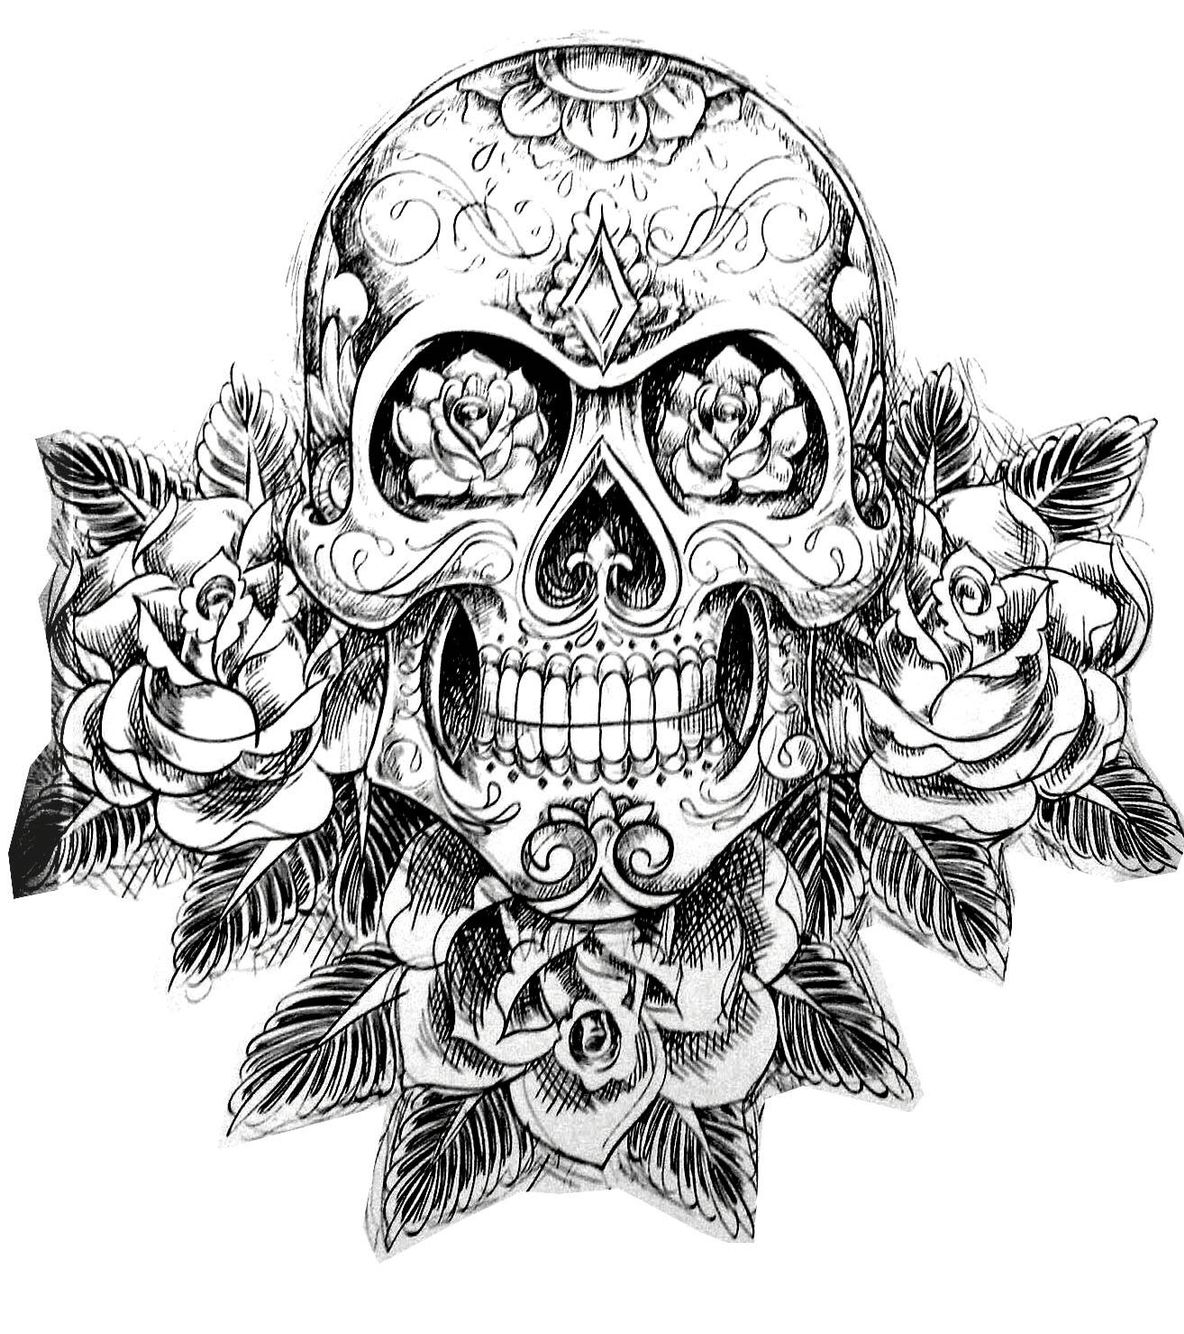 Pin by Maria Ayers on Tattoos | Pinterest | Tattoo